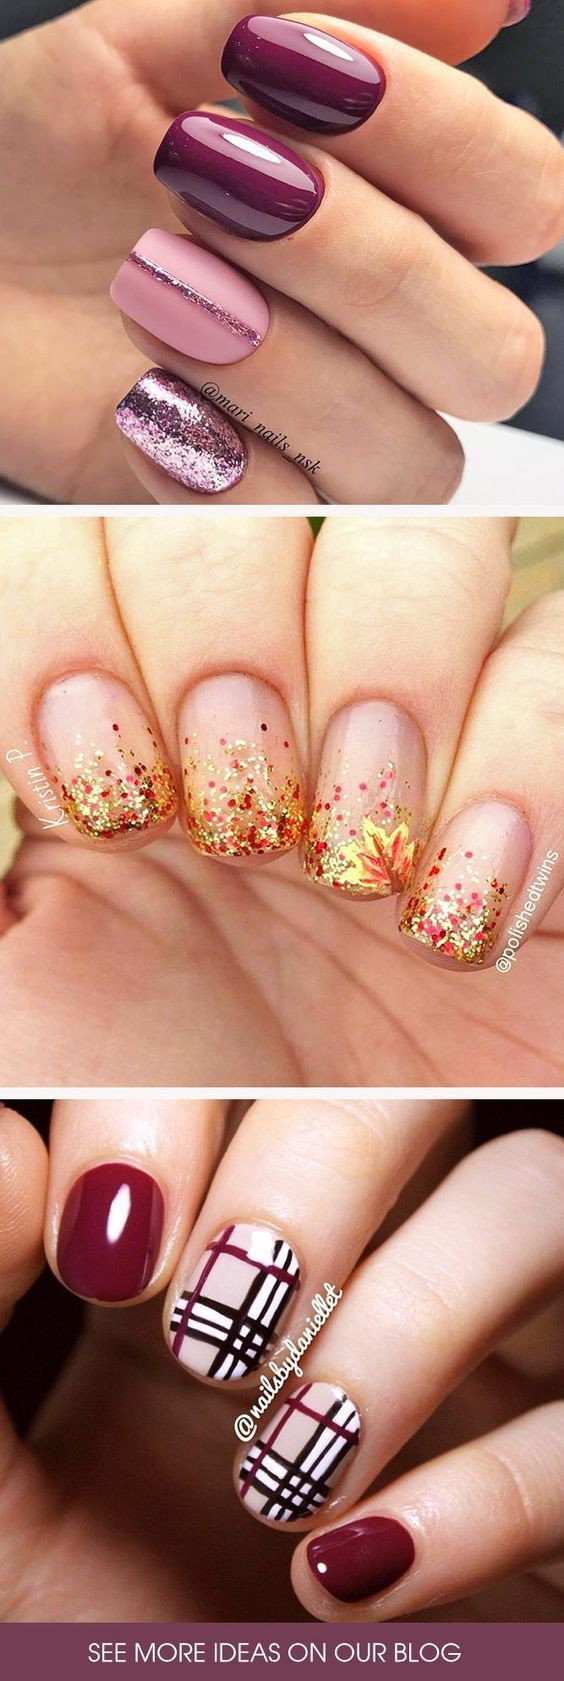 45 Must Try Fall Nail Designs and Ideas | Nageldesign, Nagelschere ...